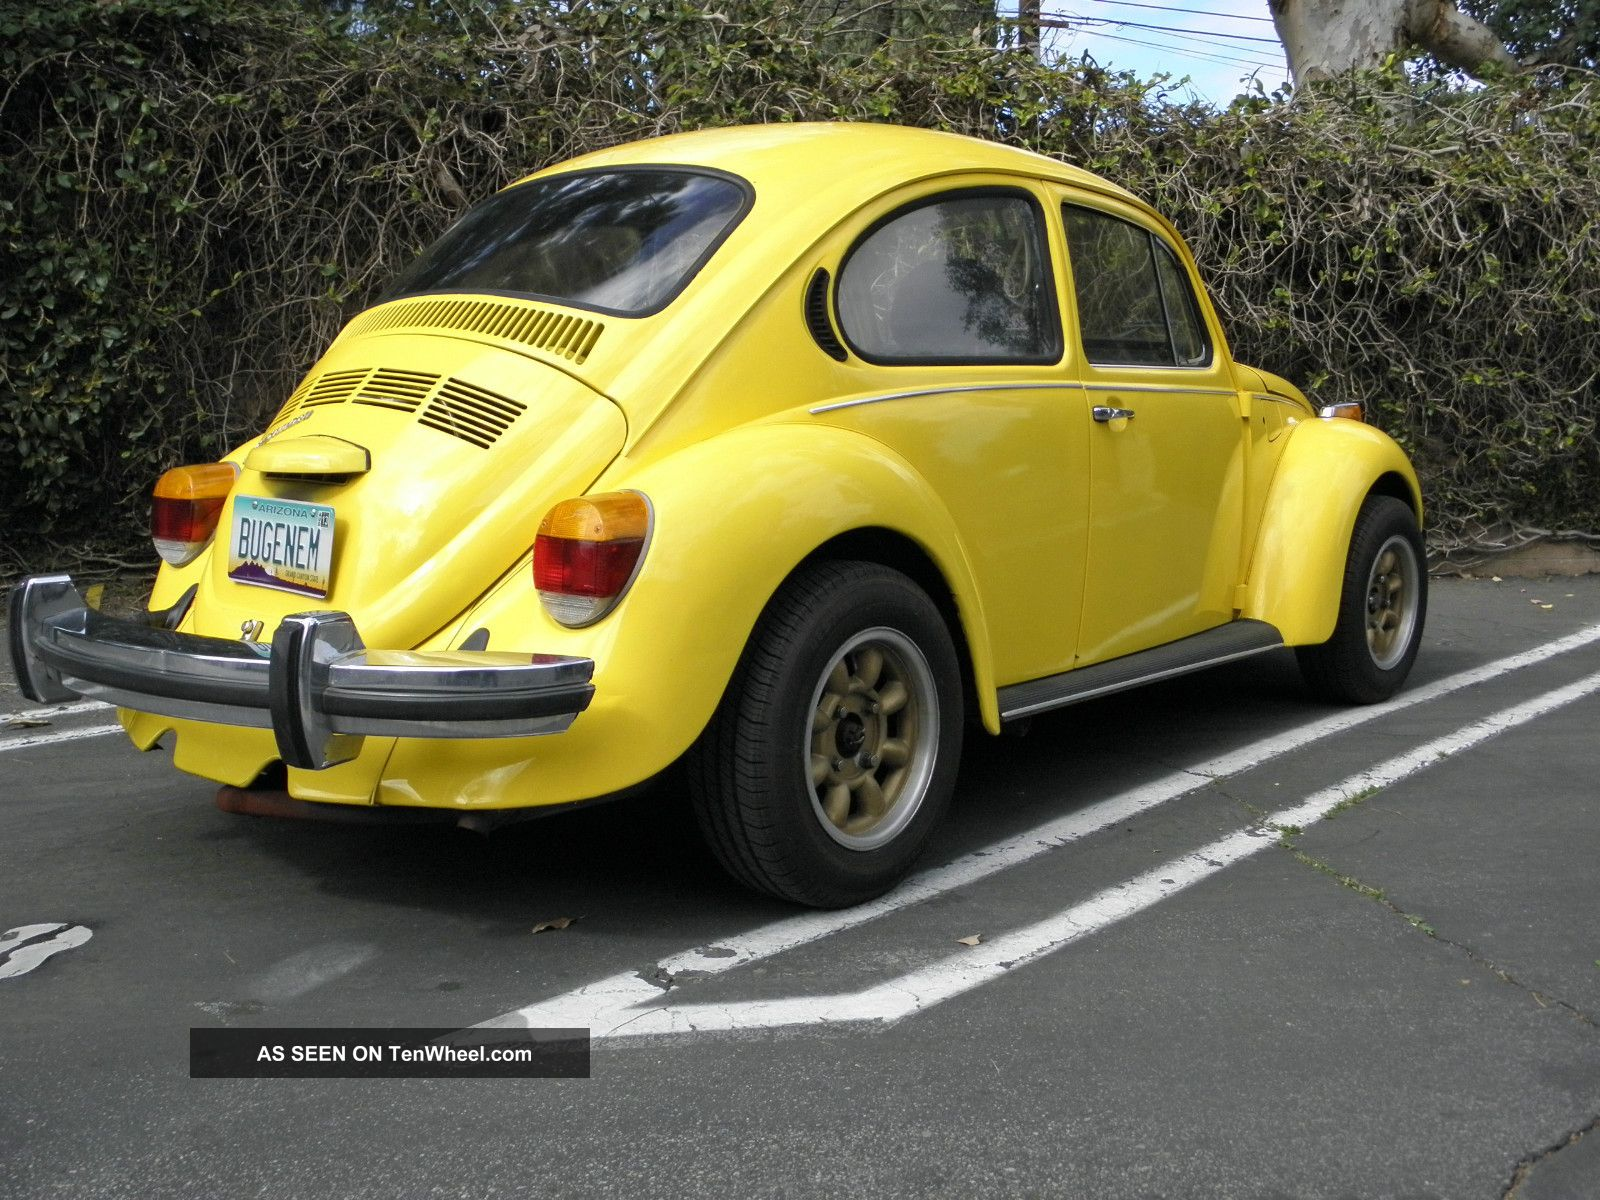 1974 vw beetle 2300cc a c 4w disc barkes. Black Bedroom Furniture Sets. Home Design Ideas